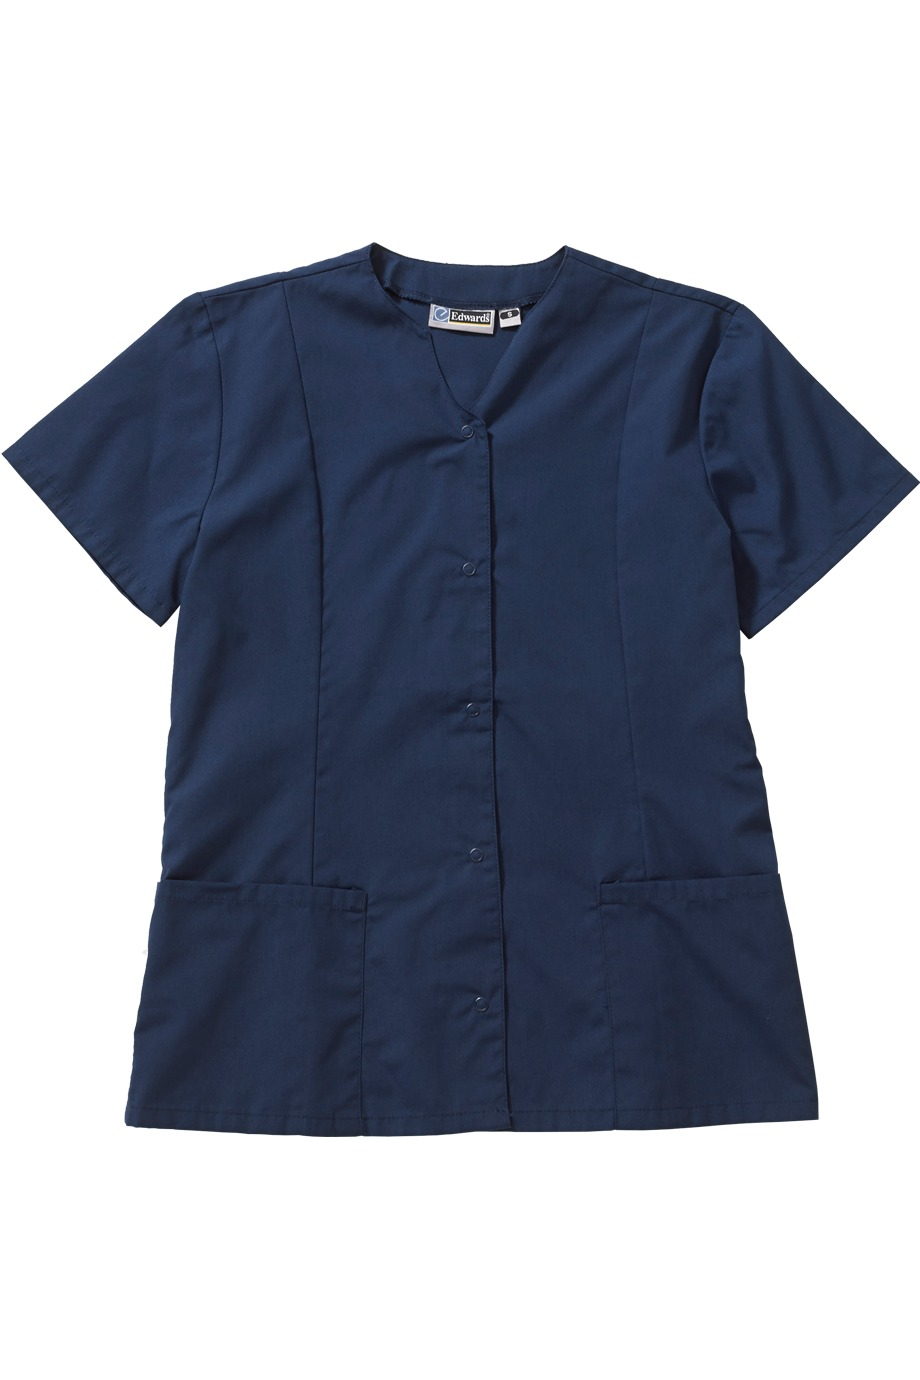 Edwards Garment 7889 - Scrub Zone Snap Front Tunic